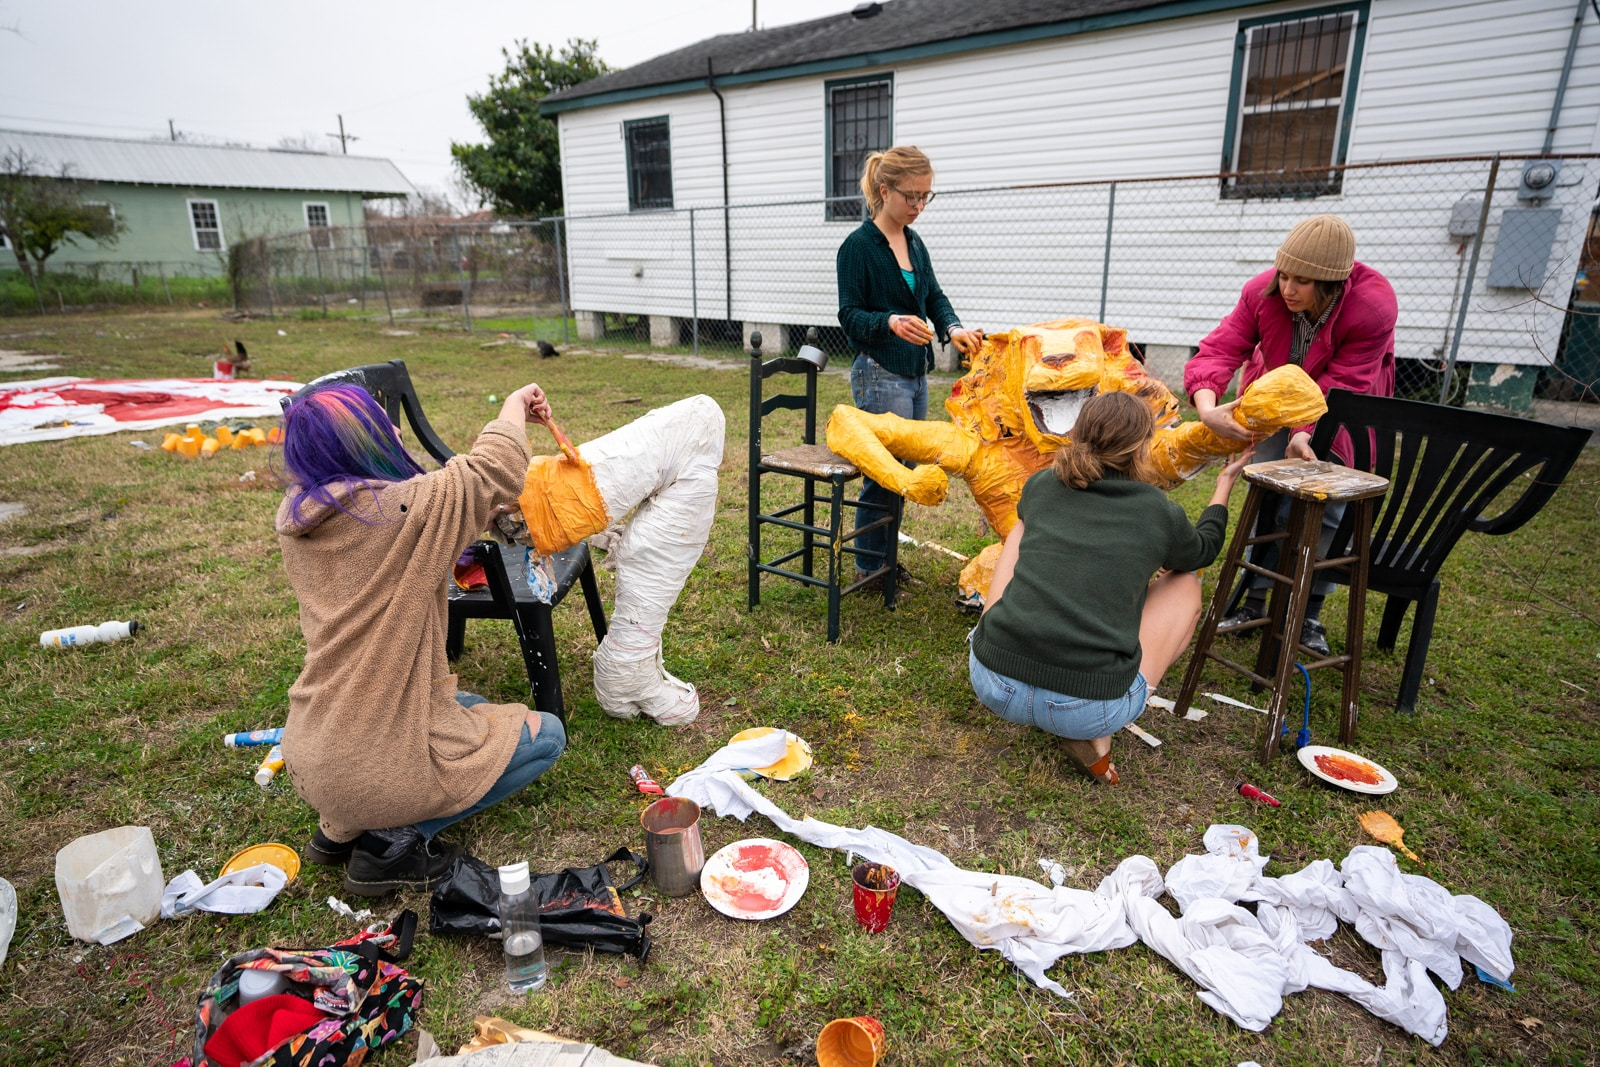 Painting a plaster lioness for a Mardi Gras parade in New Orleans, LA